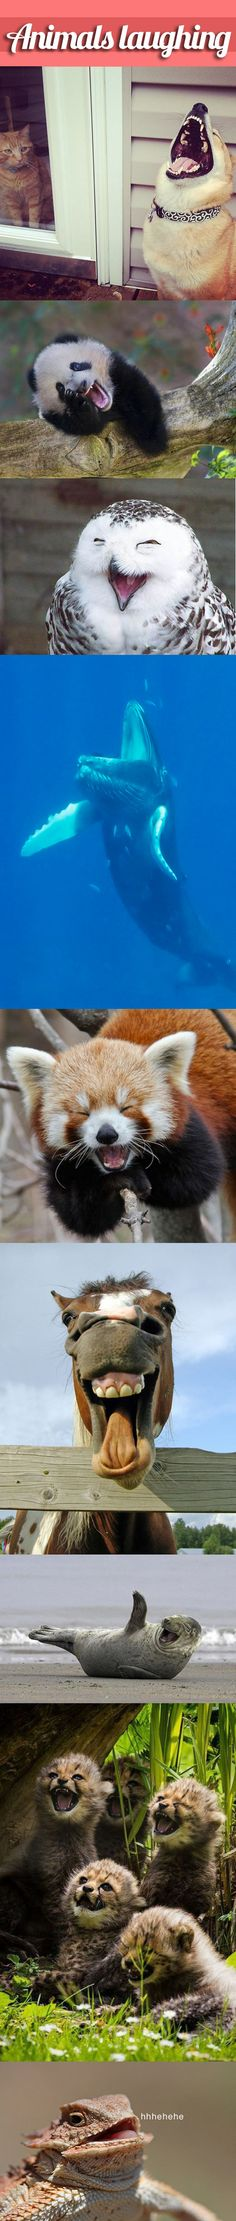 Animals laughing…this makes me smile